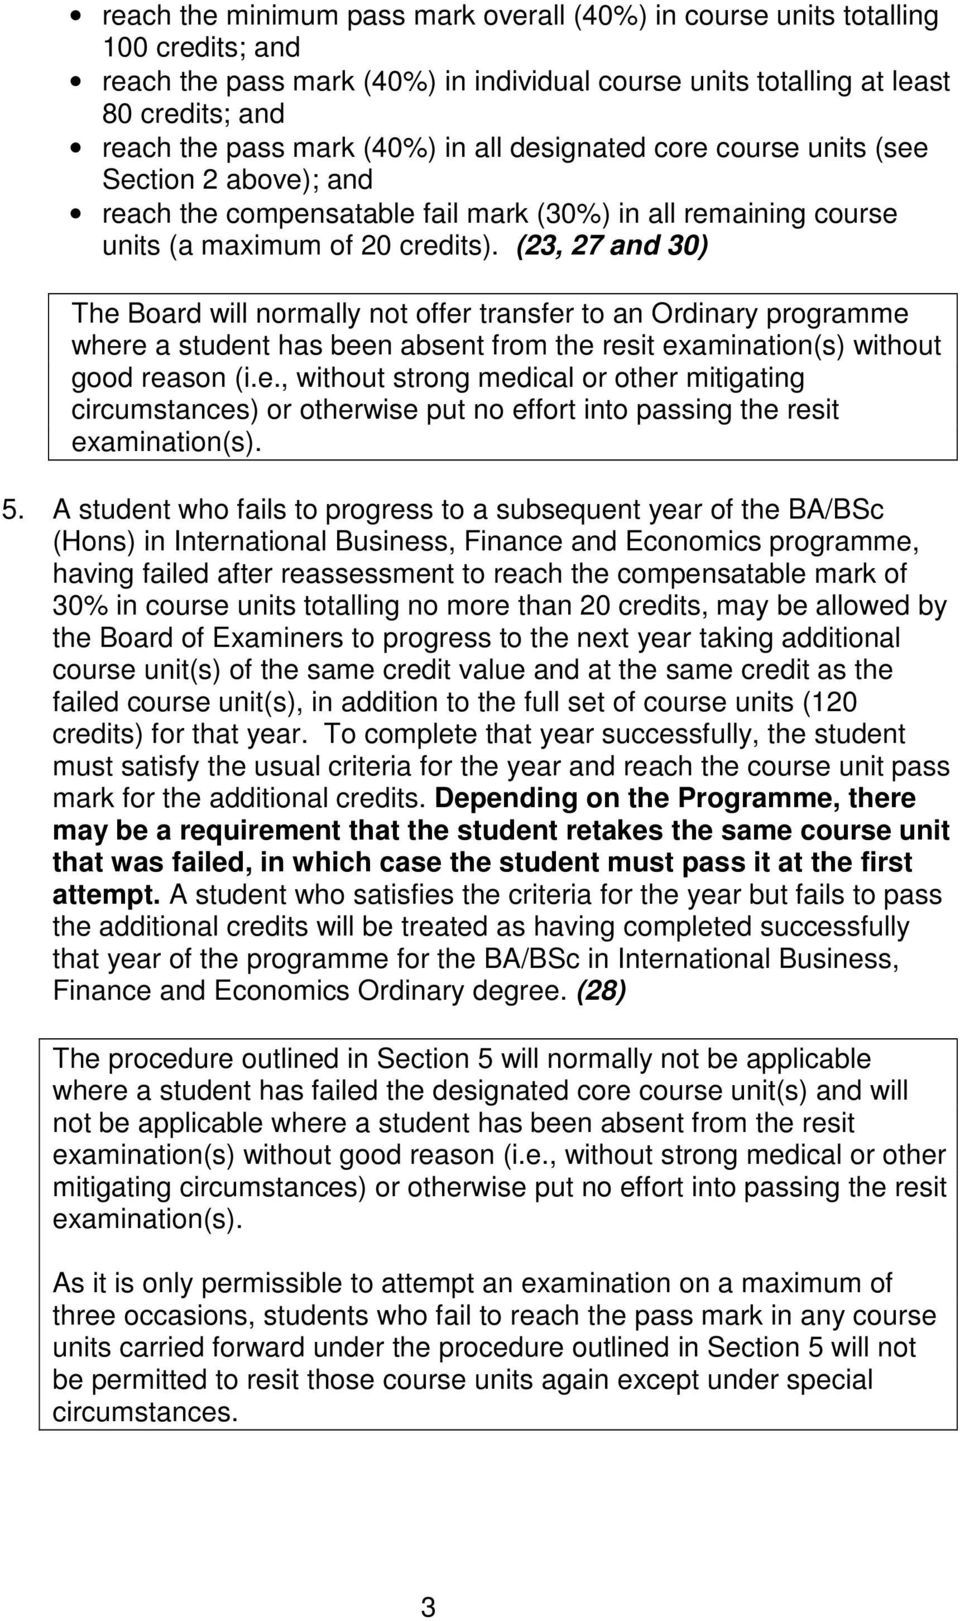 (23, 27 and 30) The Board will normally not offer transfer to an Ordinary programme where a student has been absent from the resit examination(s) without good reason (i.e., without strong medical or other mitigating circumstances) or otherwise put no effort into passing the resit examination(s).